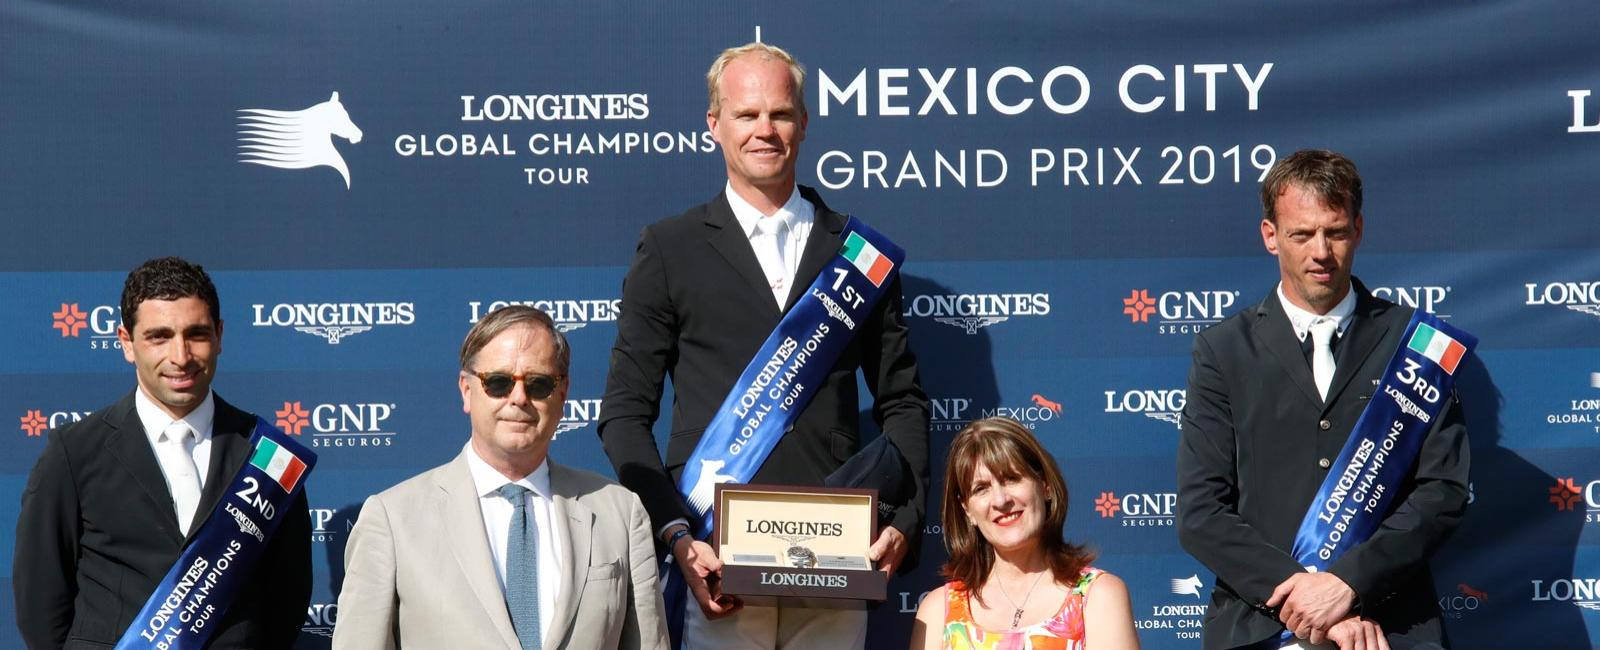 Longines Global Champions Tour of Mexico; Jumping; 2019